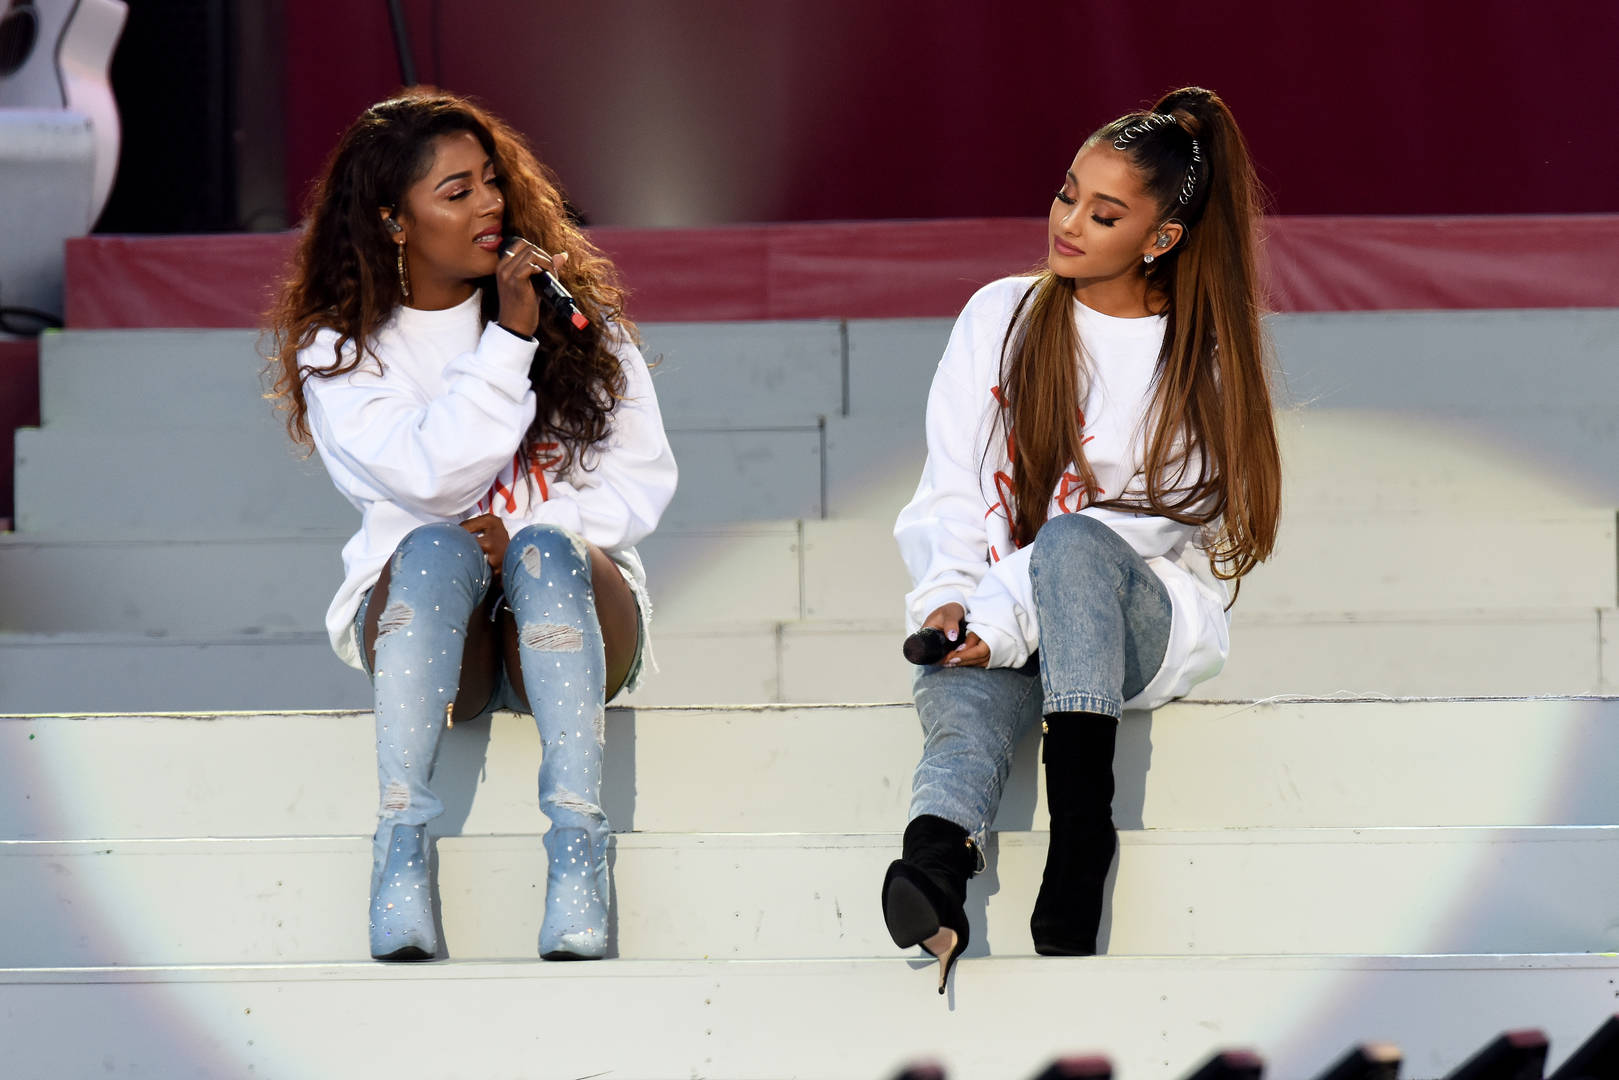 Ariana Grande and Victoria Monet team up for new single 'MONOPOLY'